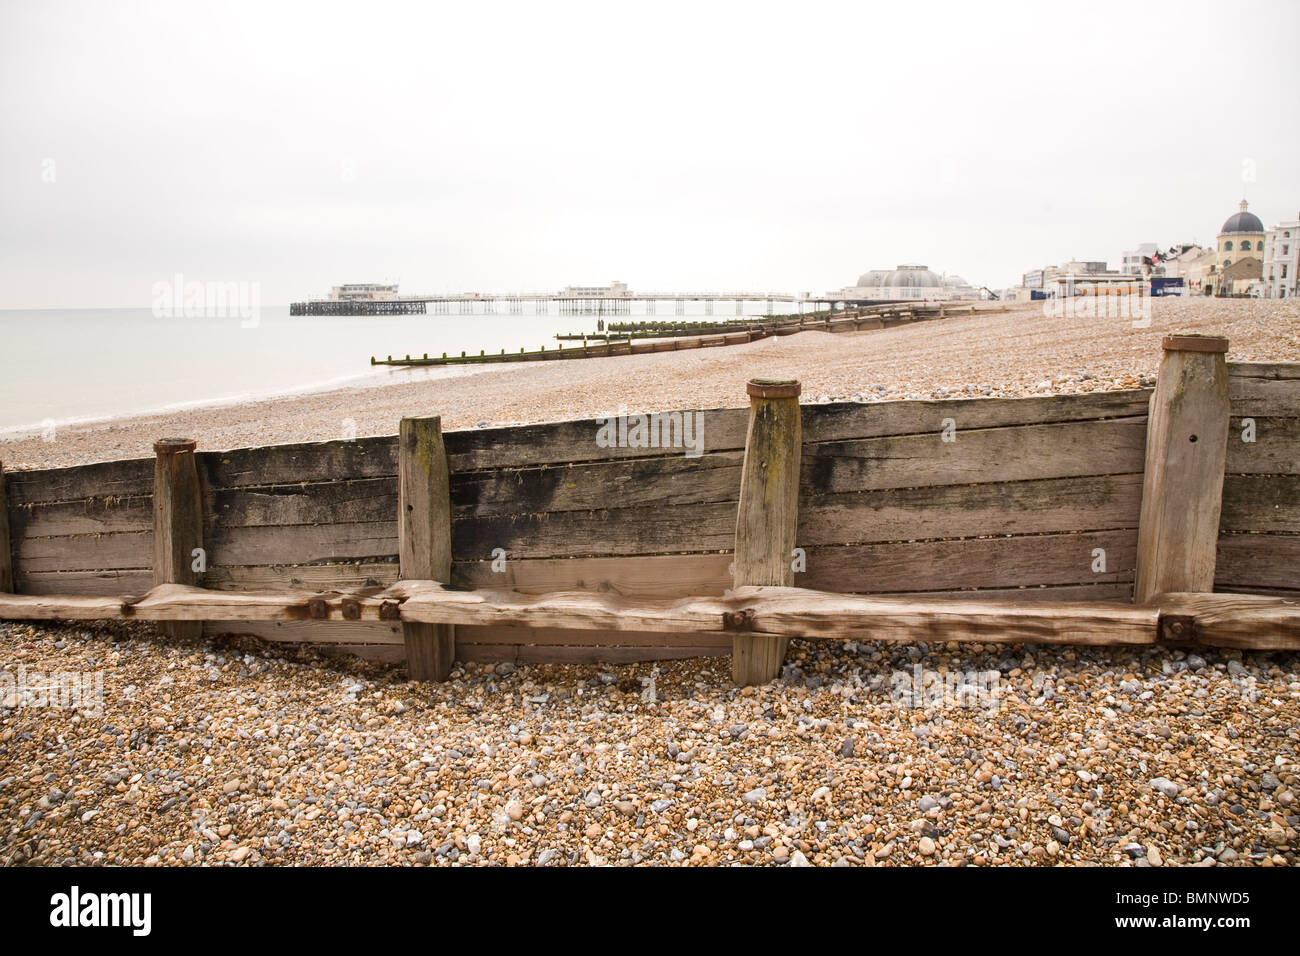 Breakwaters help prevent tidal erosion on the beach at Worthing in West Sussex, England. - Stock Image